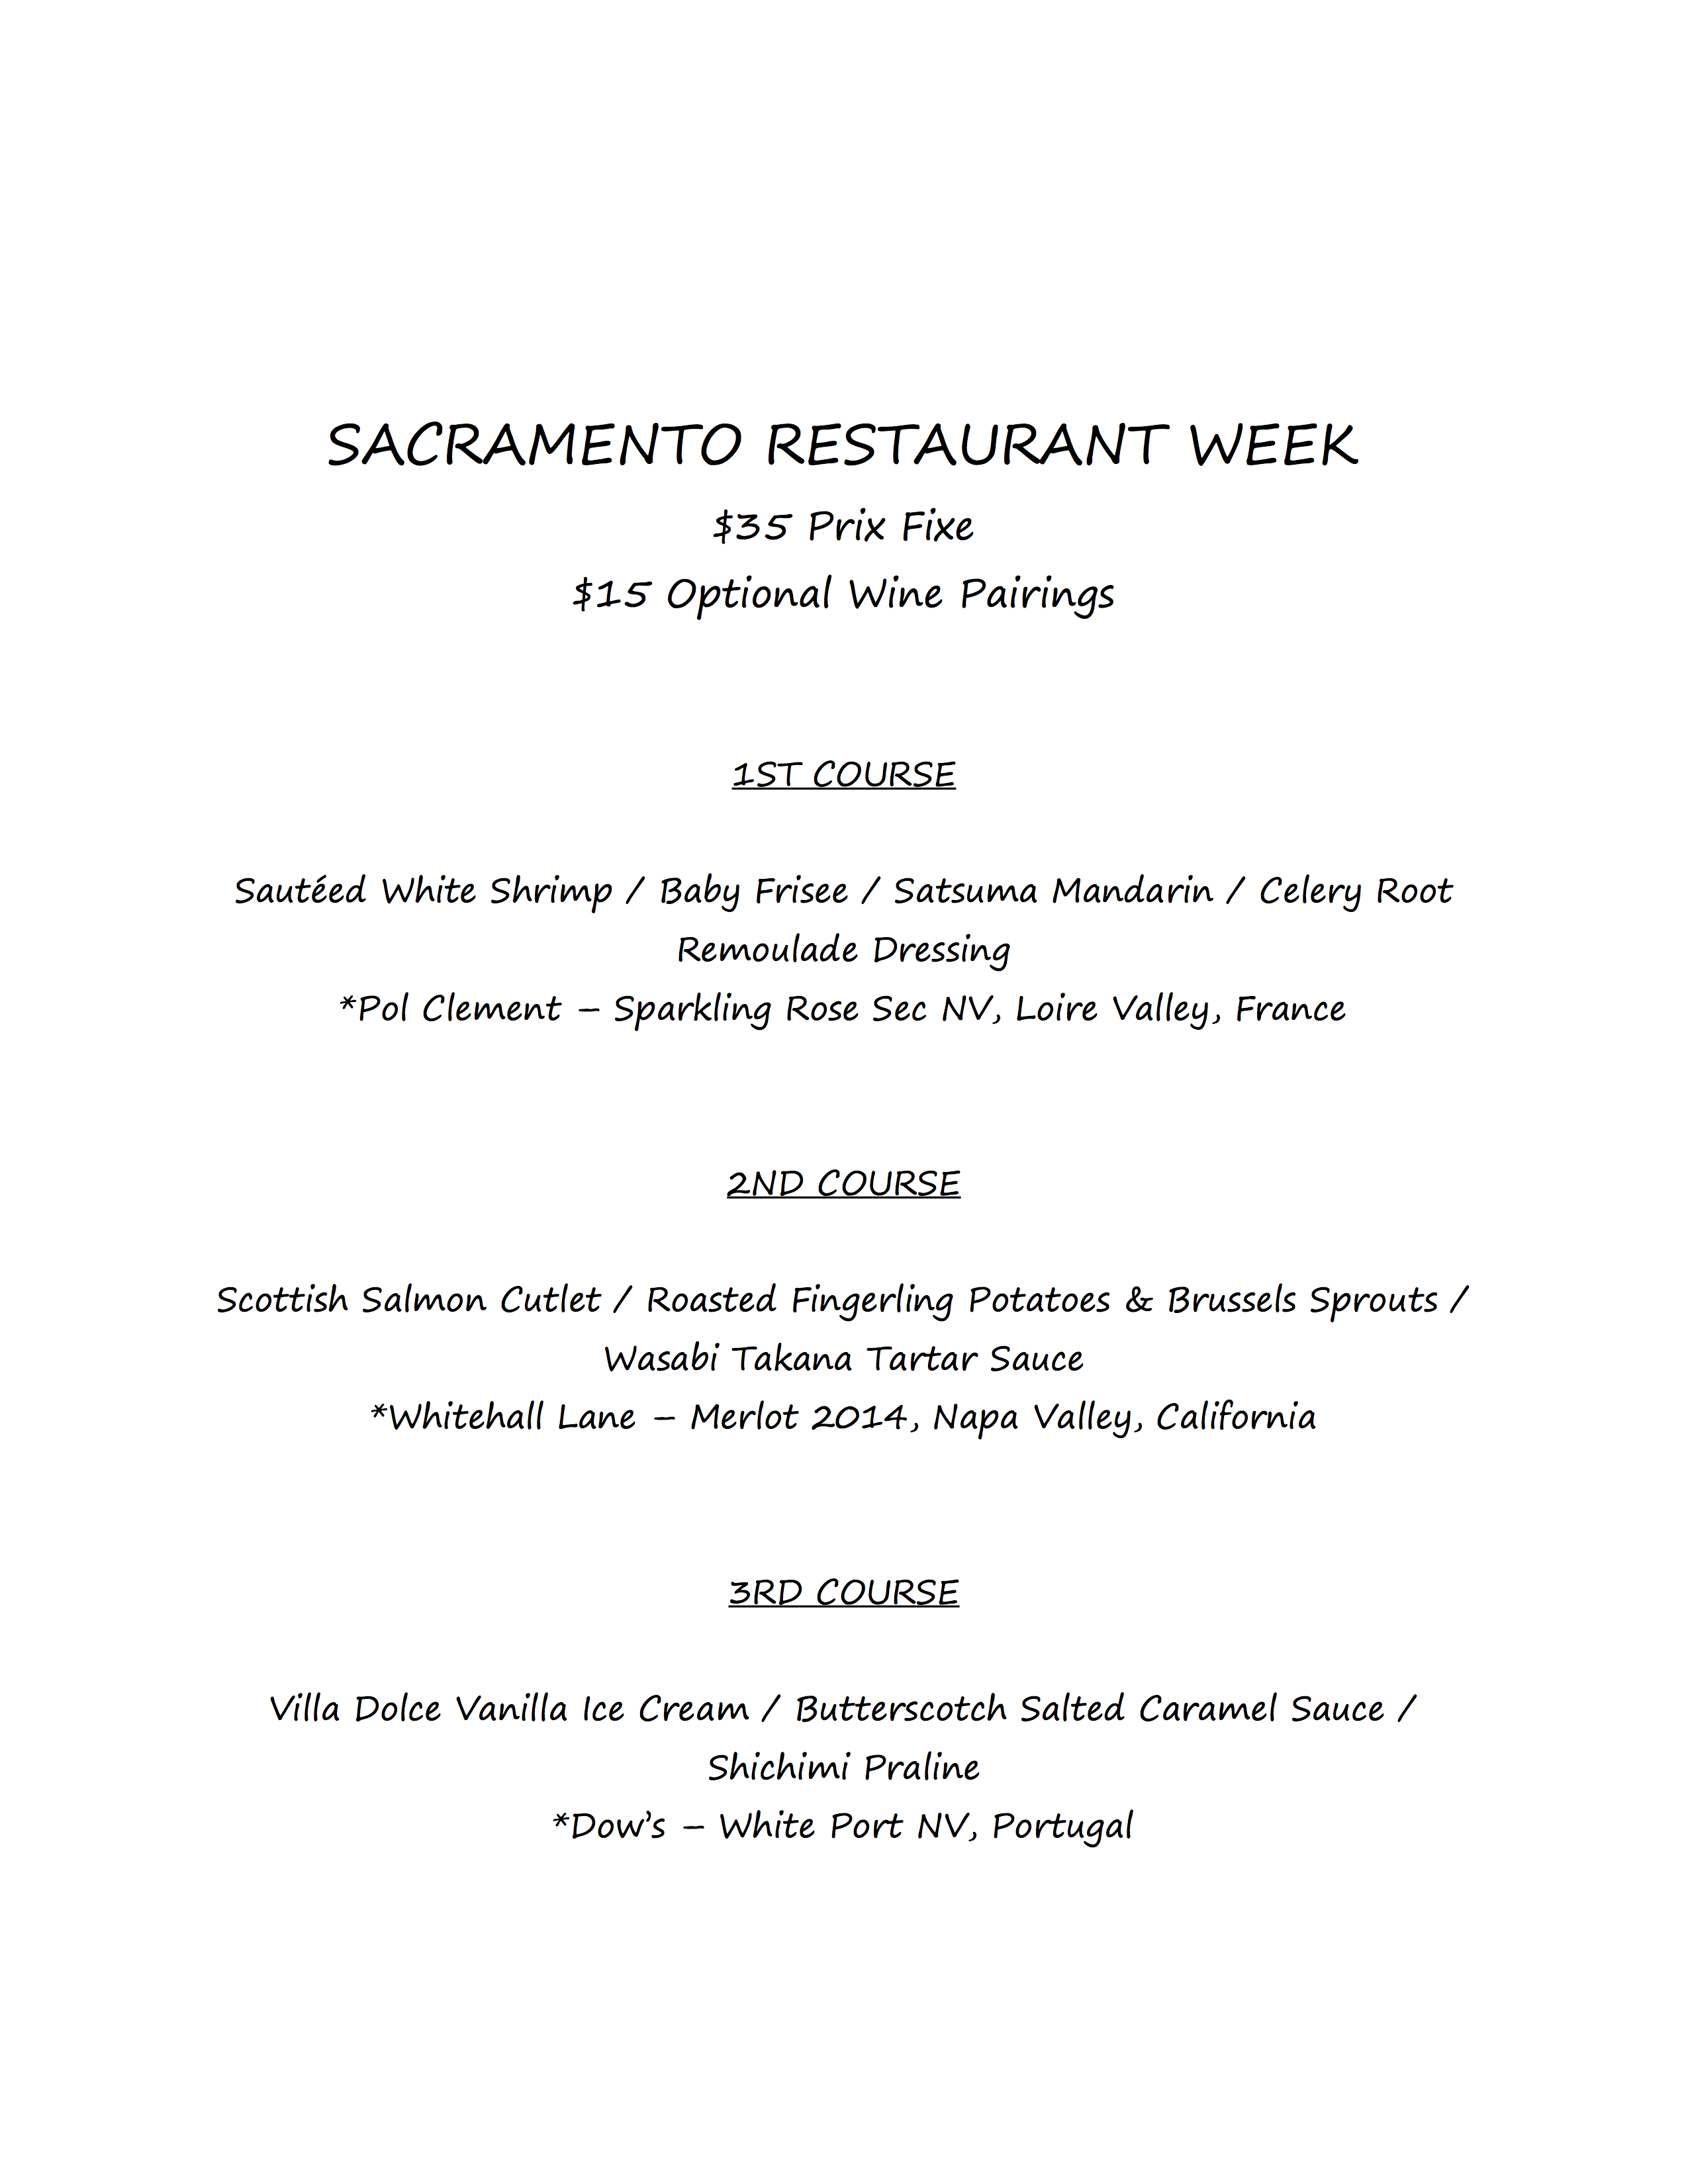 dine downtown restaurant week presented by downtown sacramento